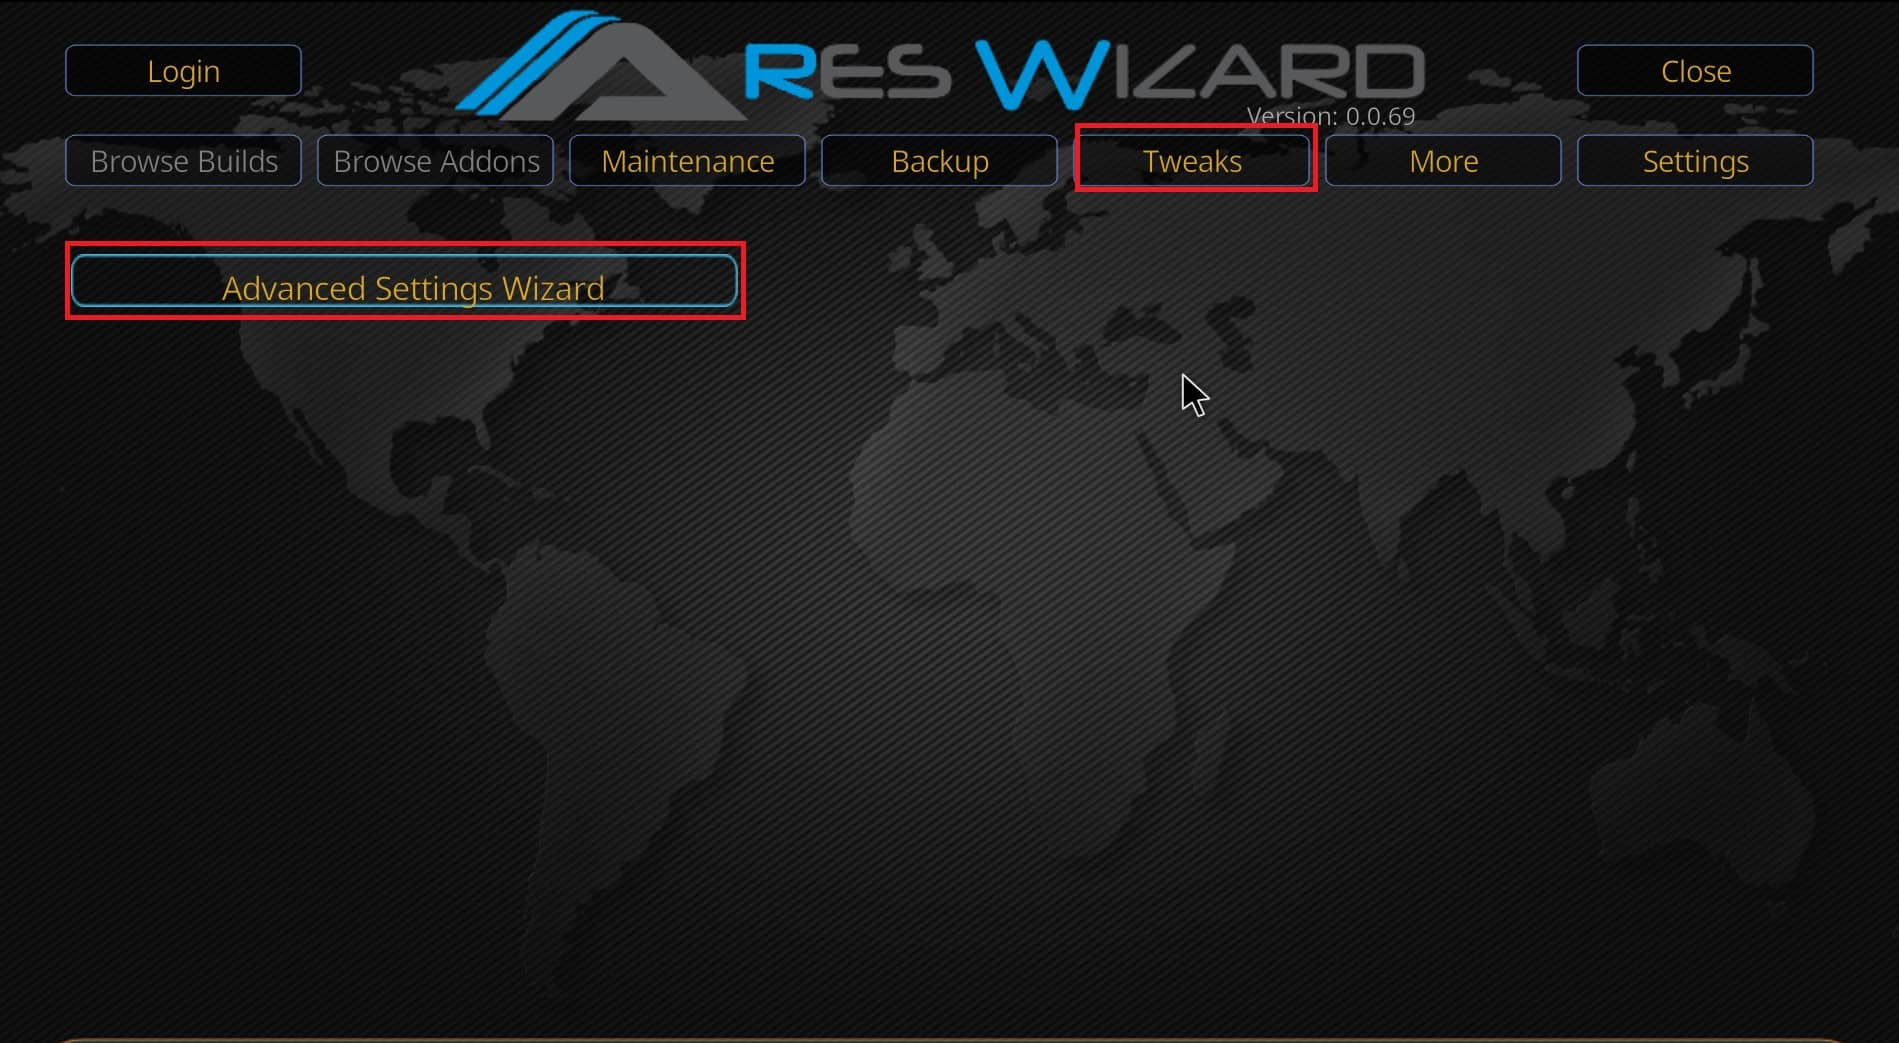 Ares wizard settings